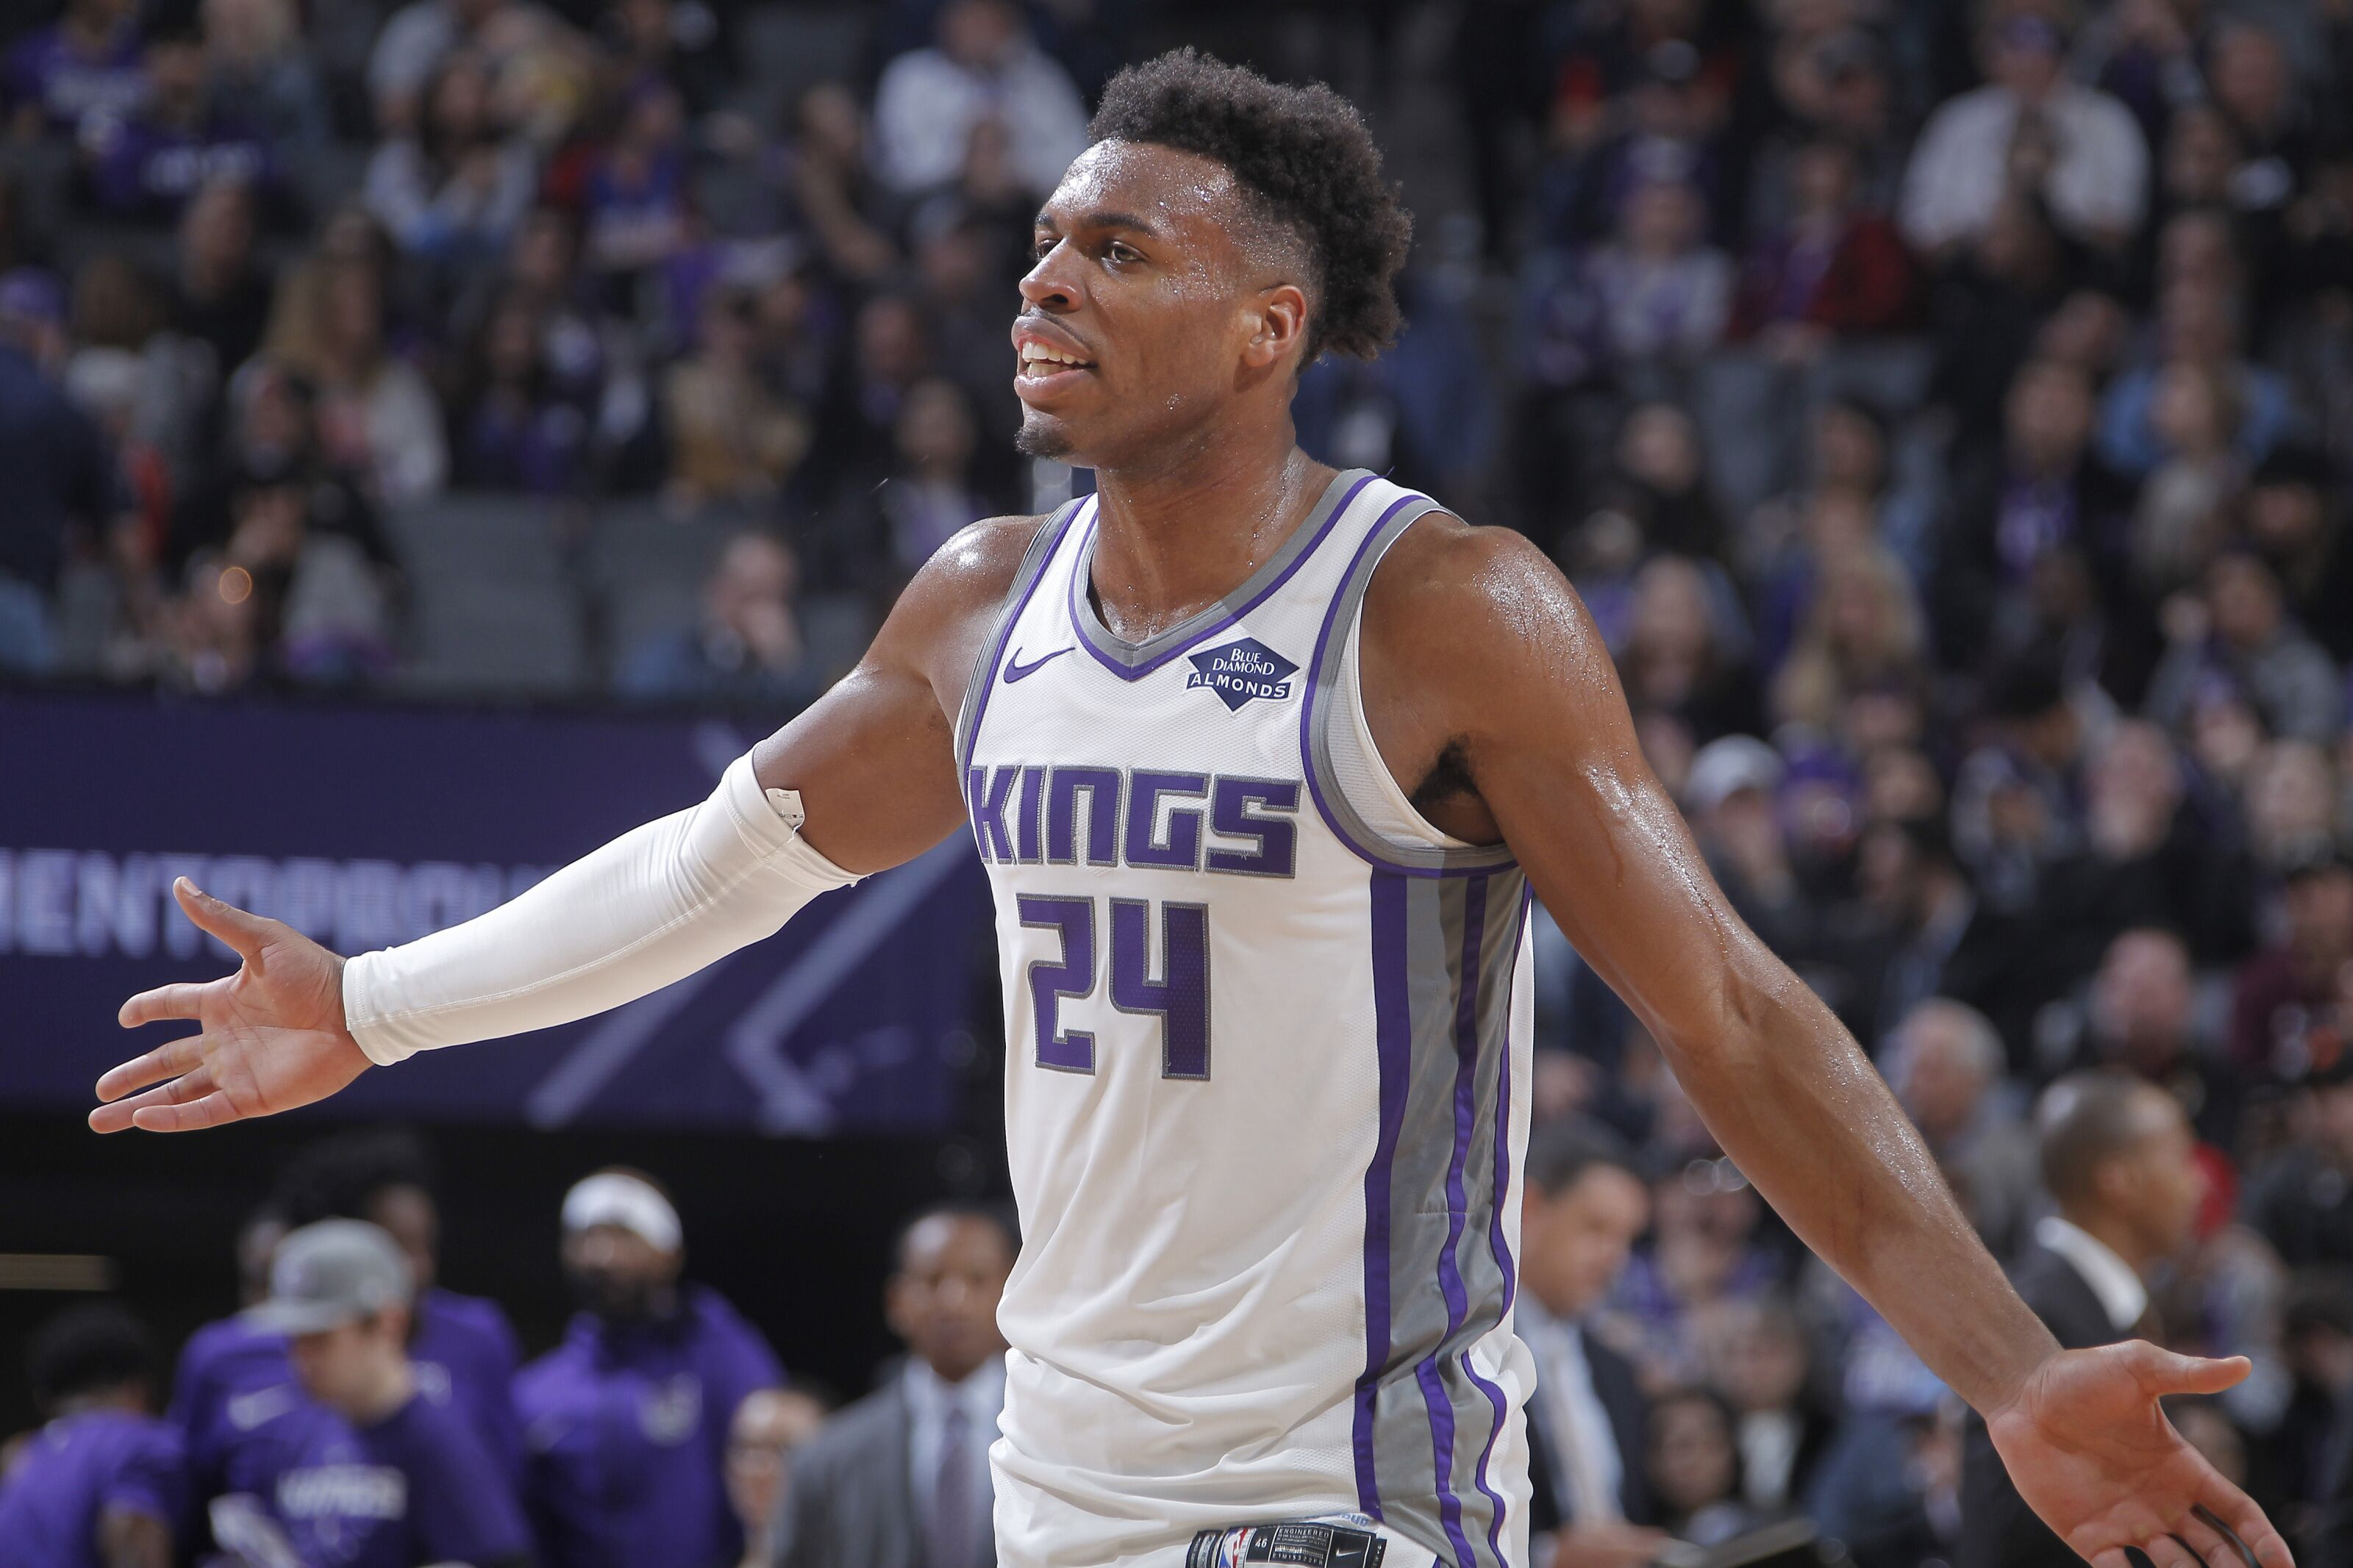 New Orleans Pelicans Buddy Hield, Kings at an impasse: Does he make sense for Pels?